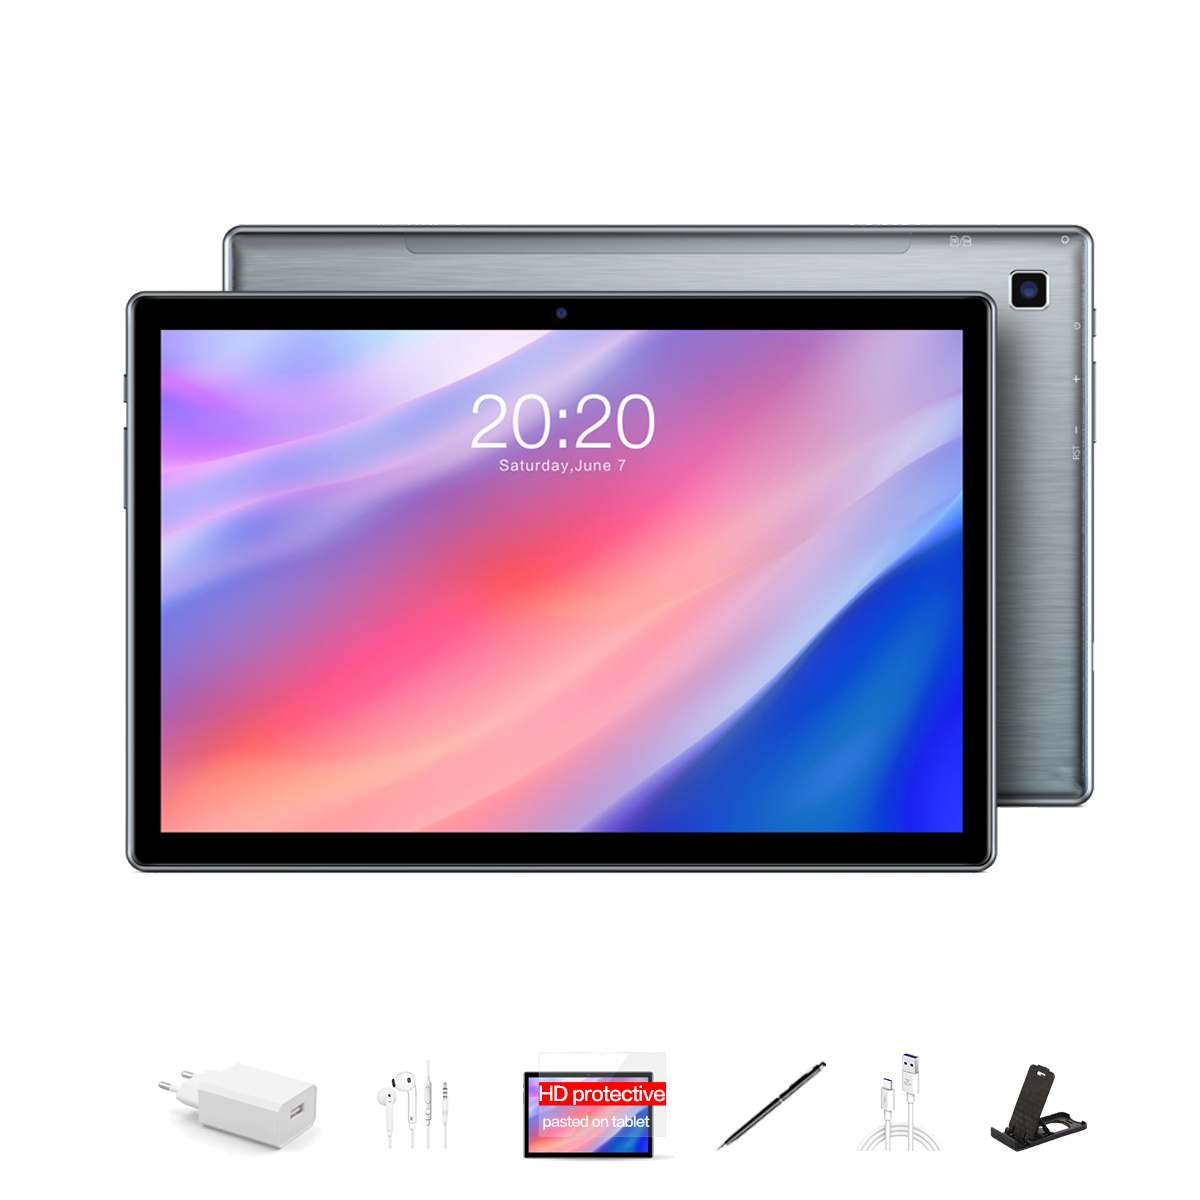 TECLAST P20HD 10.1-inch 4G Tablet Android 10.0 SC9863A Call Eight-core 1.6GHz 4GB RAM 64GB Bluetooth 5.0 - Bundle 1